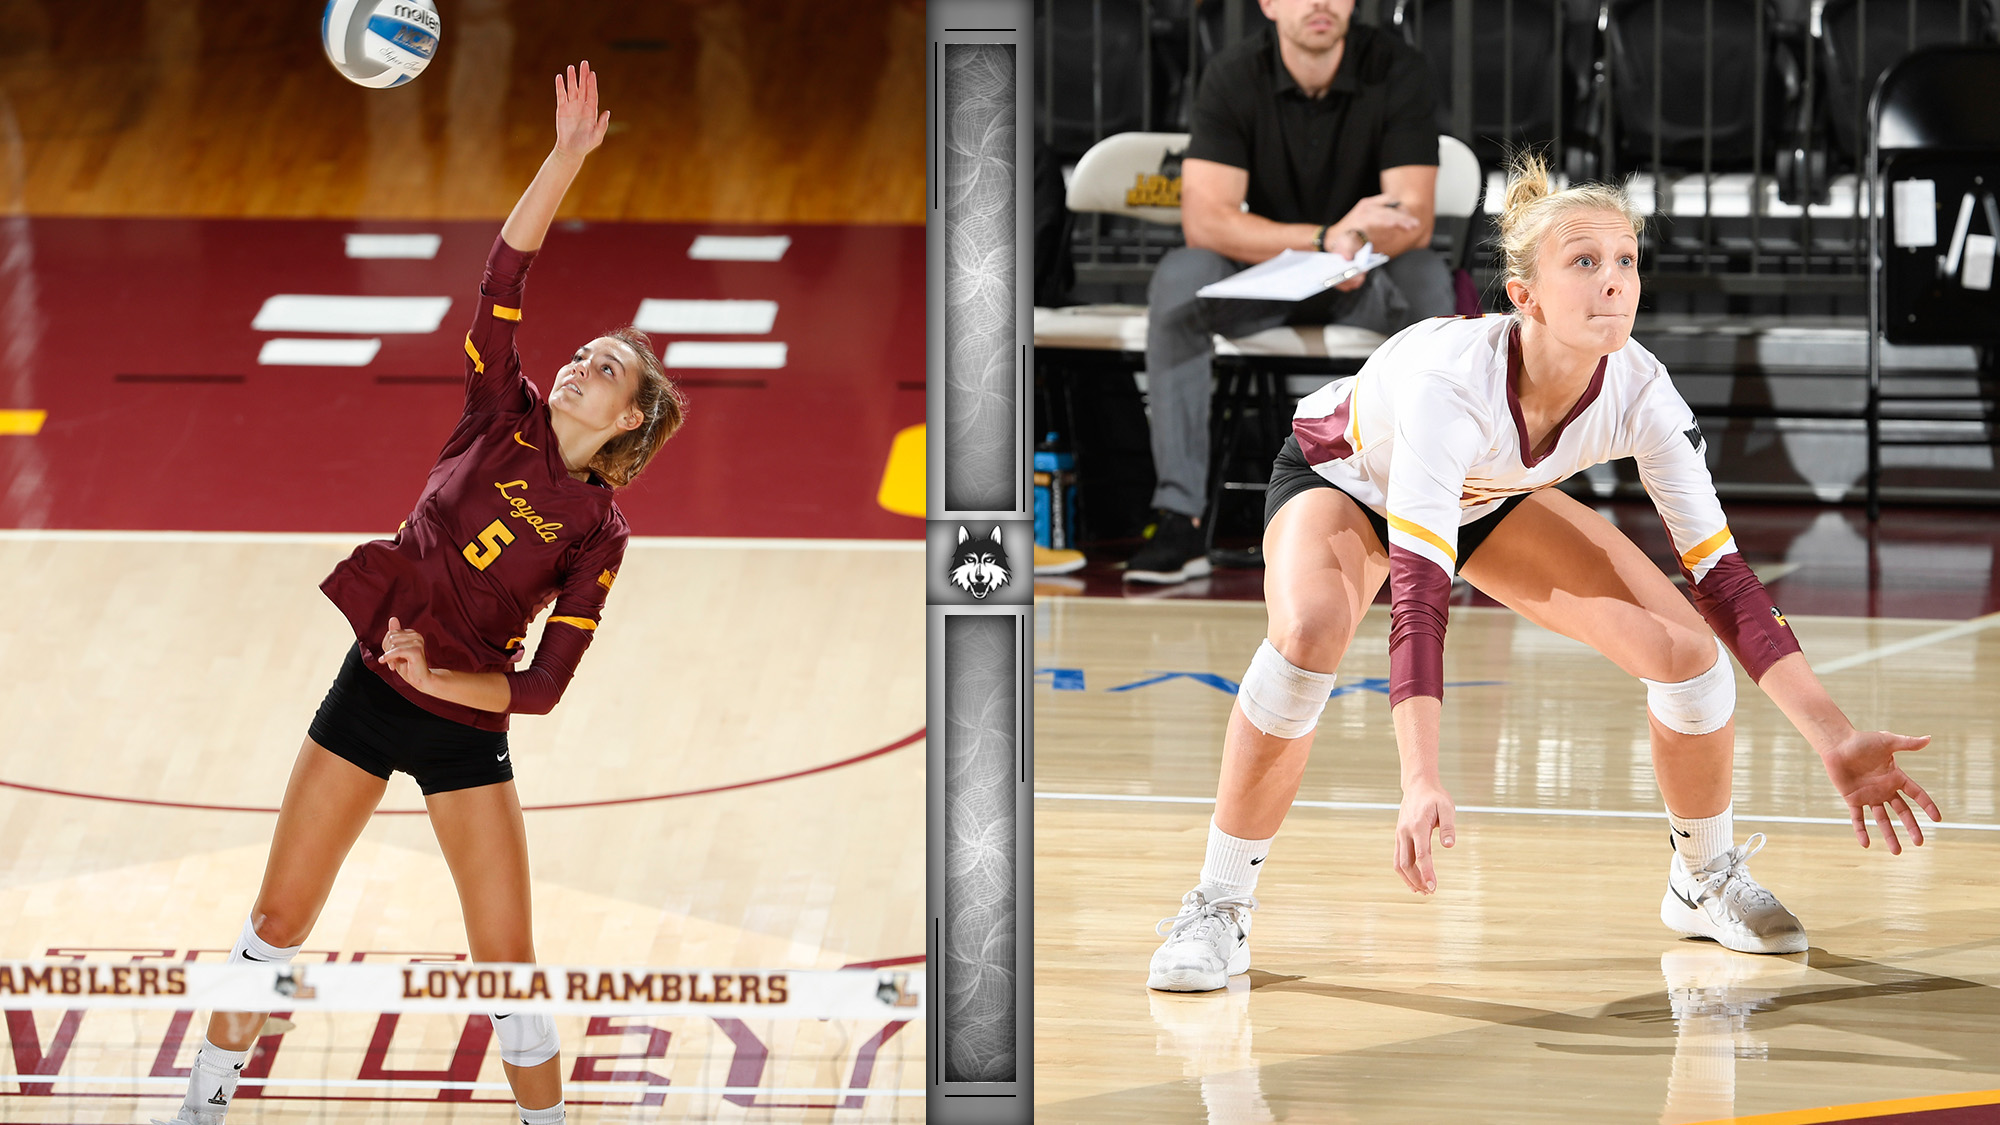 Barnes Moser Earn Mvc Volleyball Weekly Honors Loyola University Chicago Athletics